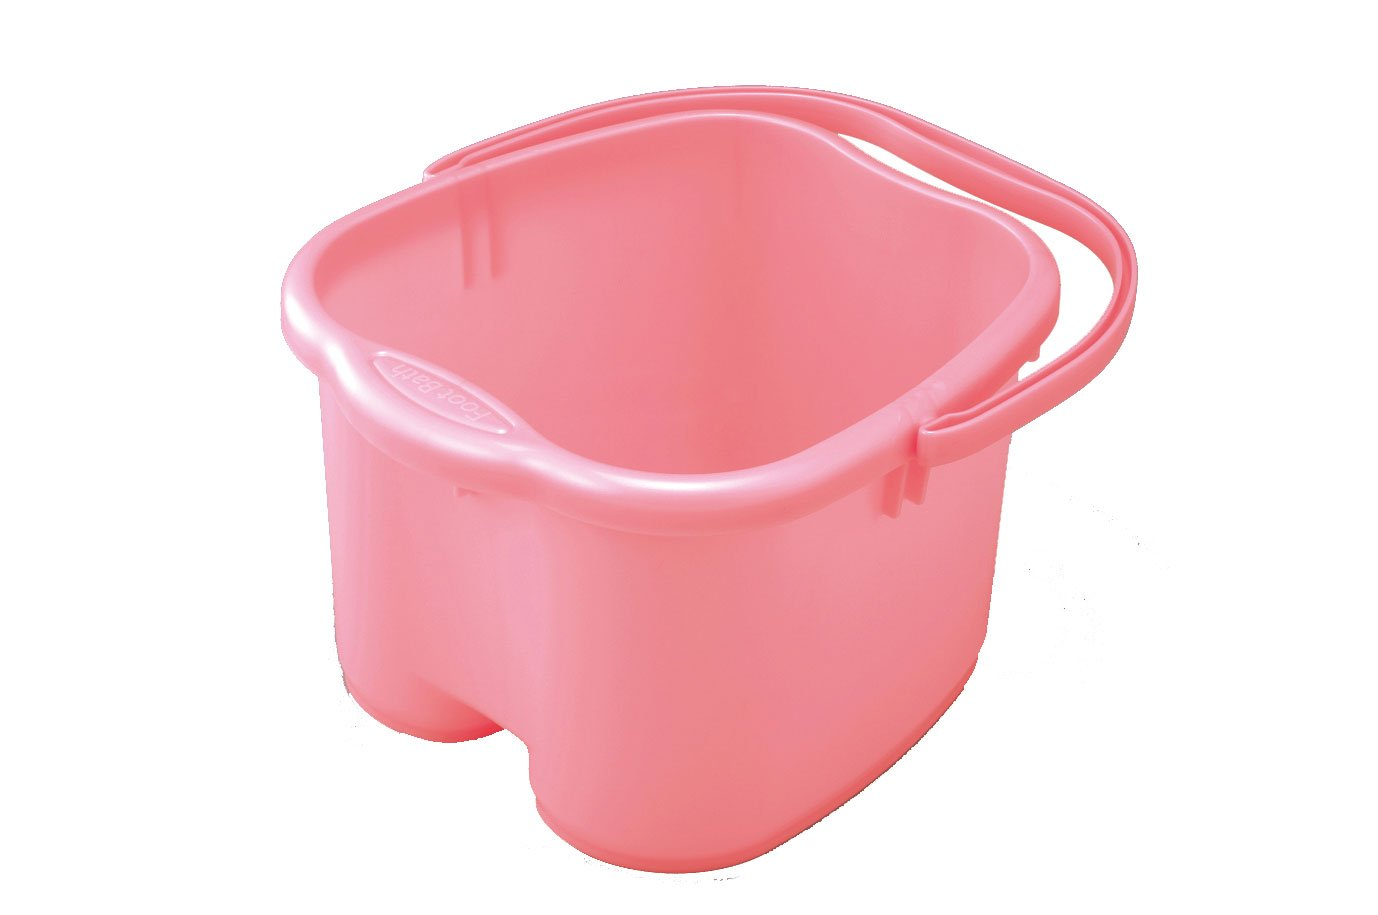 Inomata Foot Detox Massage Spa Bucket, Pink 2500